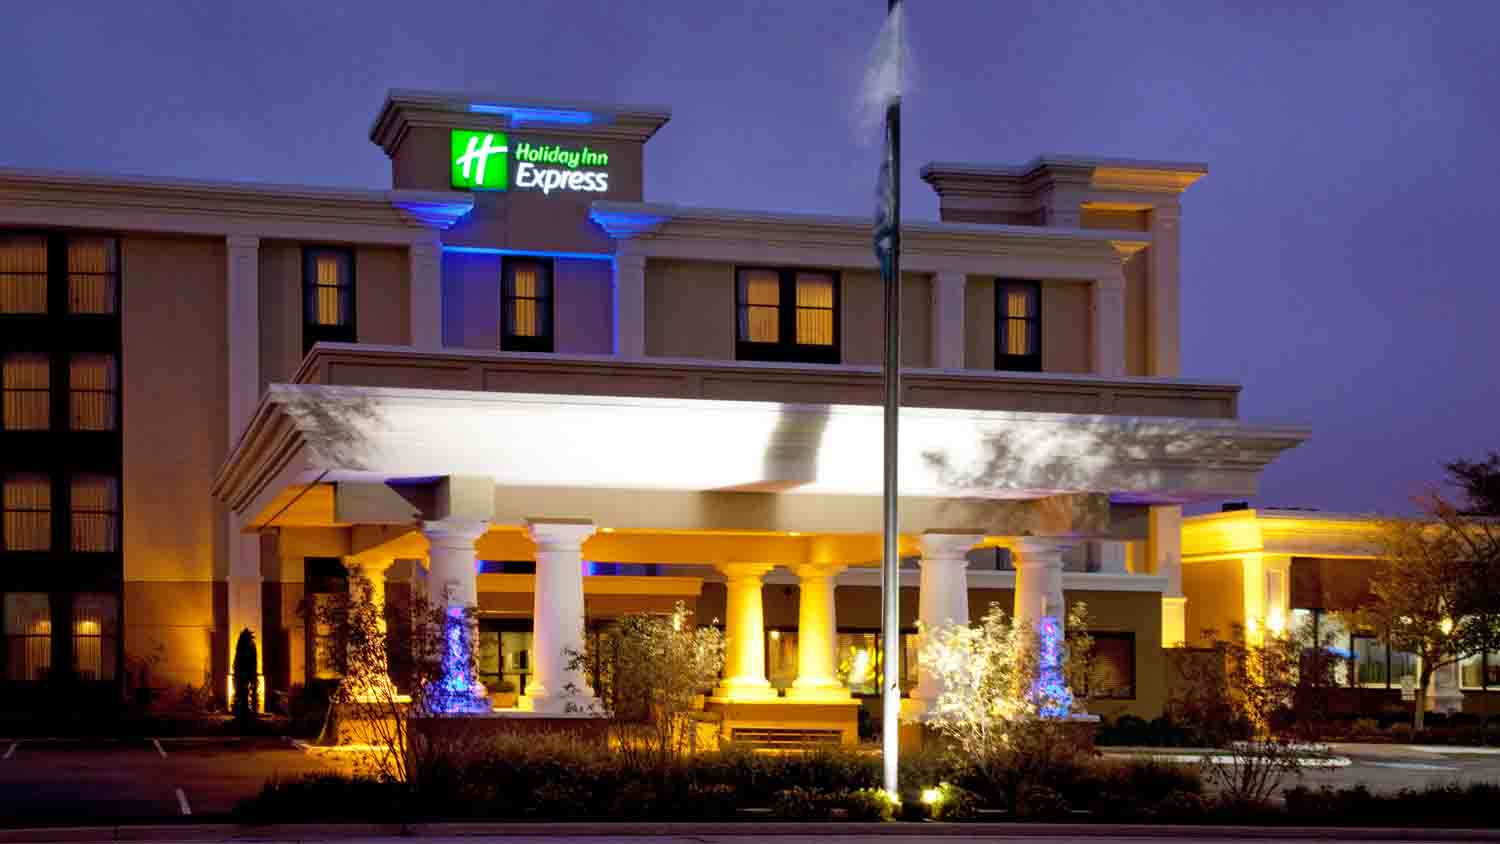 Holiday Inn Express Northwest - Park 100 5